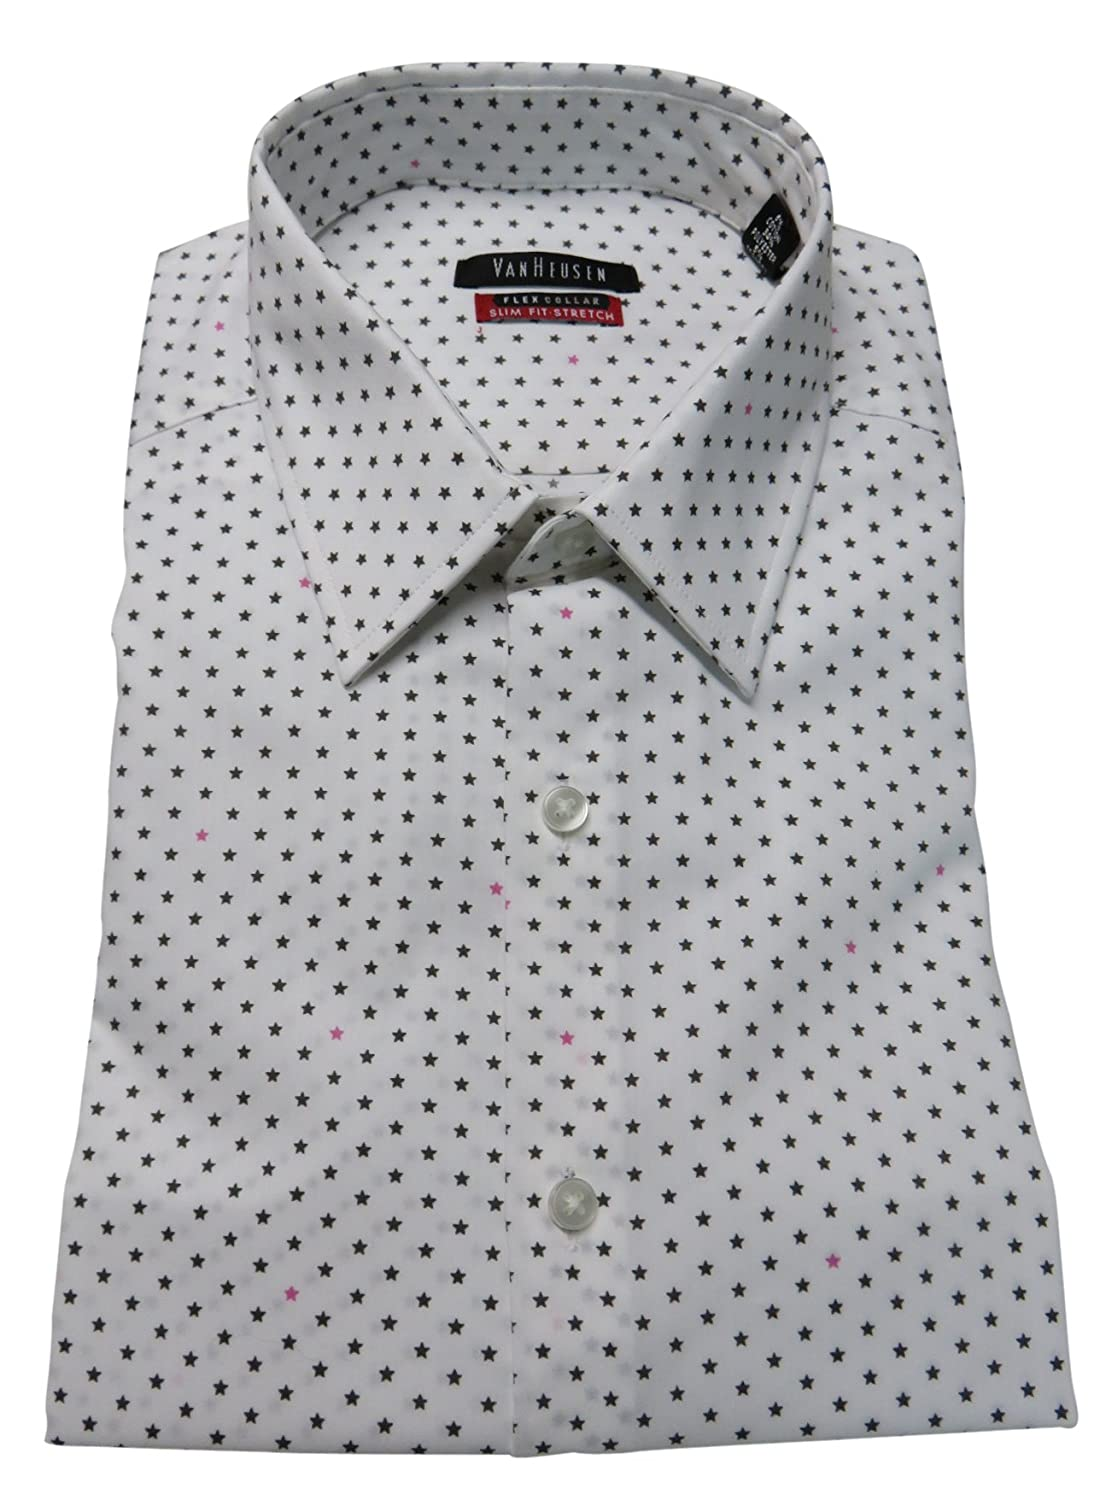 Van Heusen Mens Slim Fit Flex Collar Shirt Size 1612 32 33